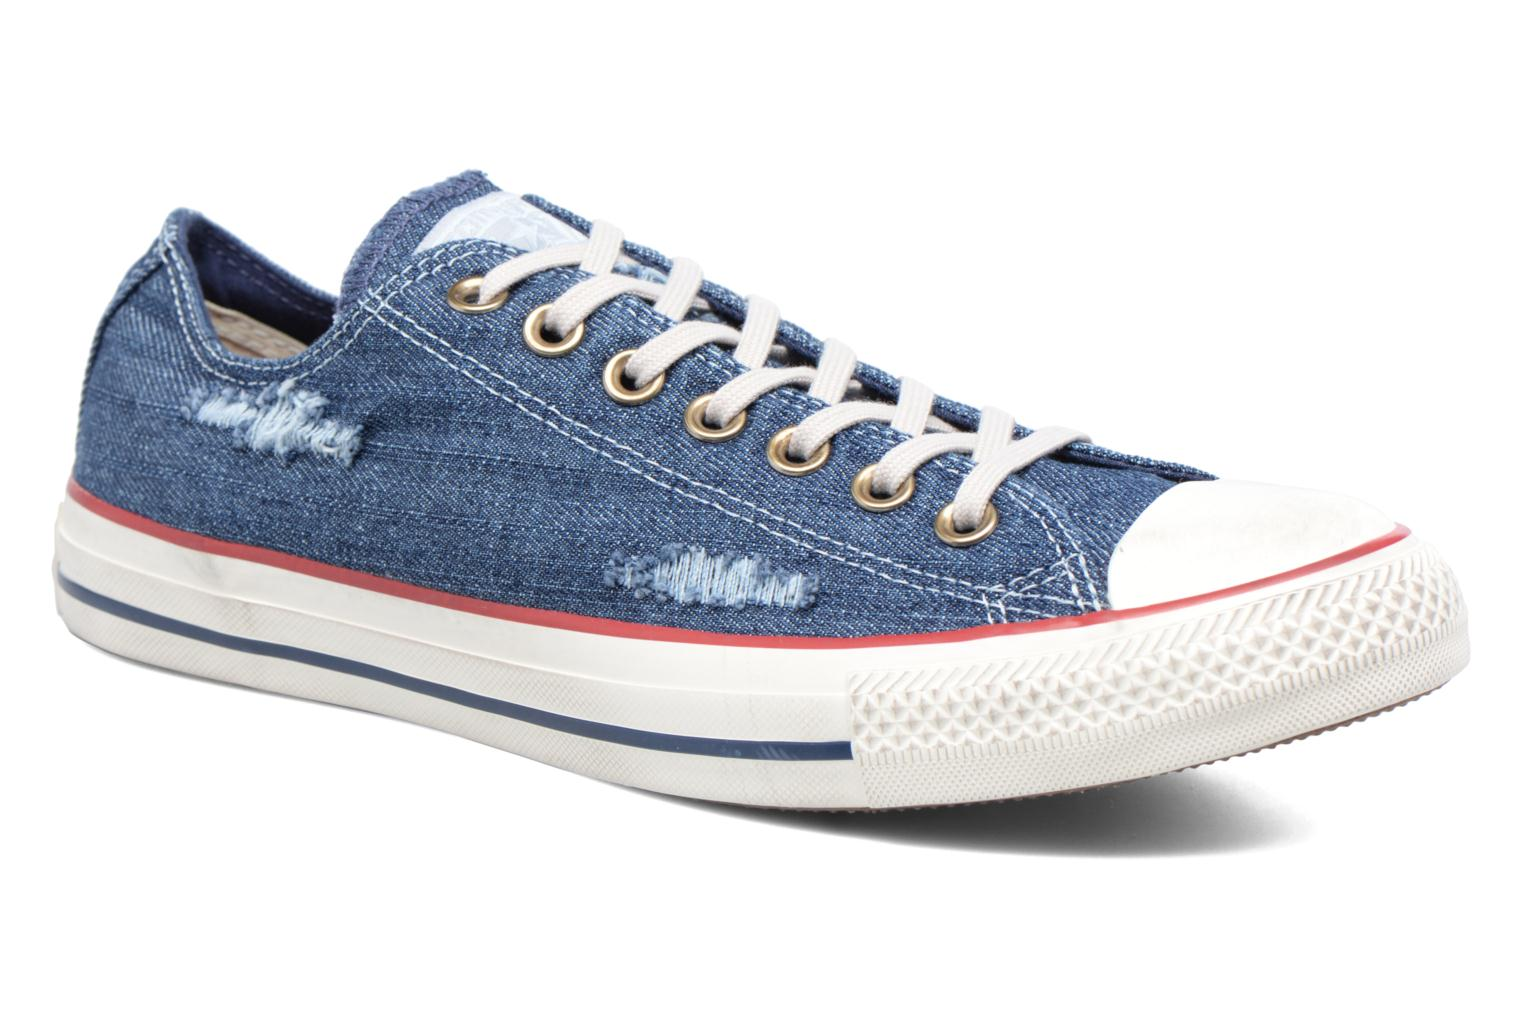 Converse Chuck Taylor All Star Leather Hi M (Bleu) Baskets